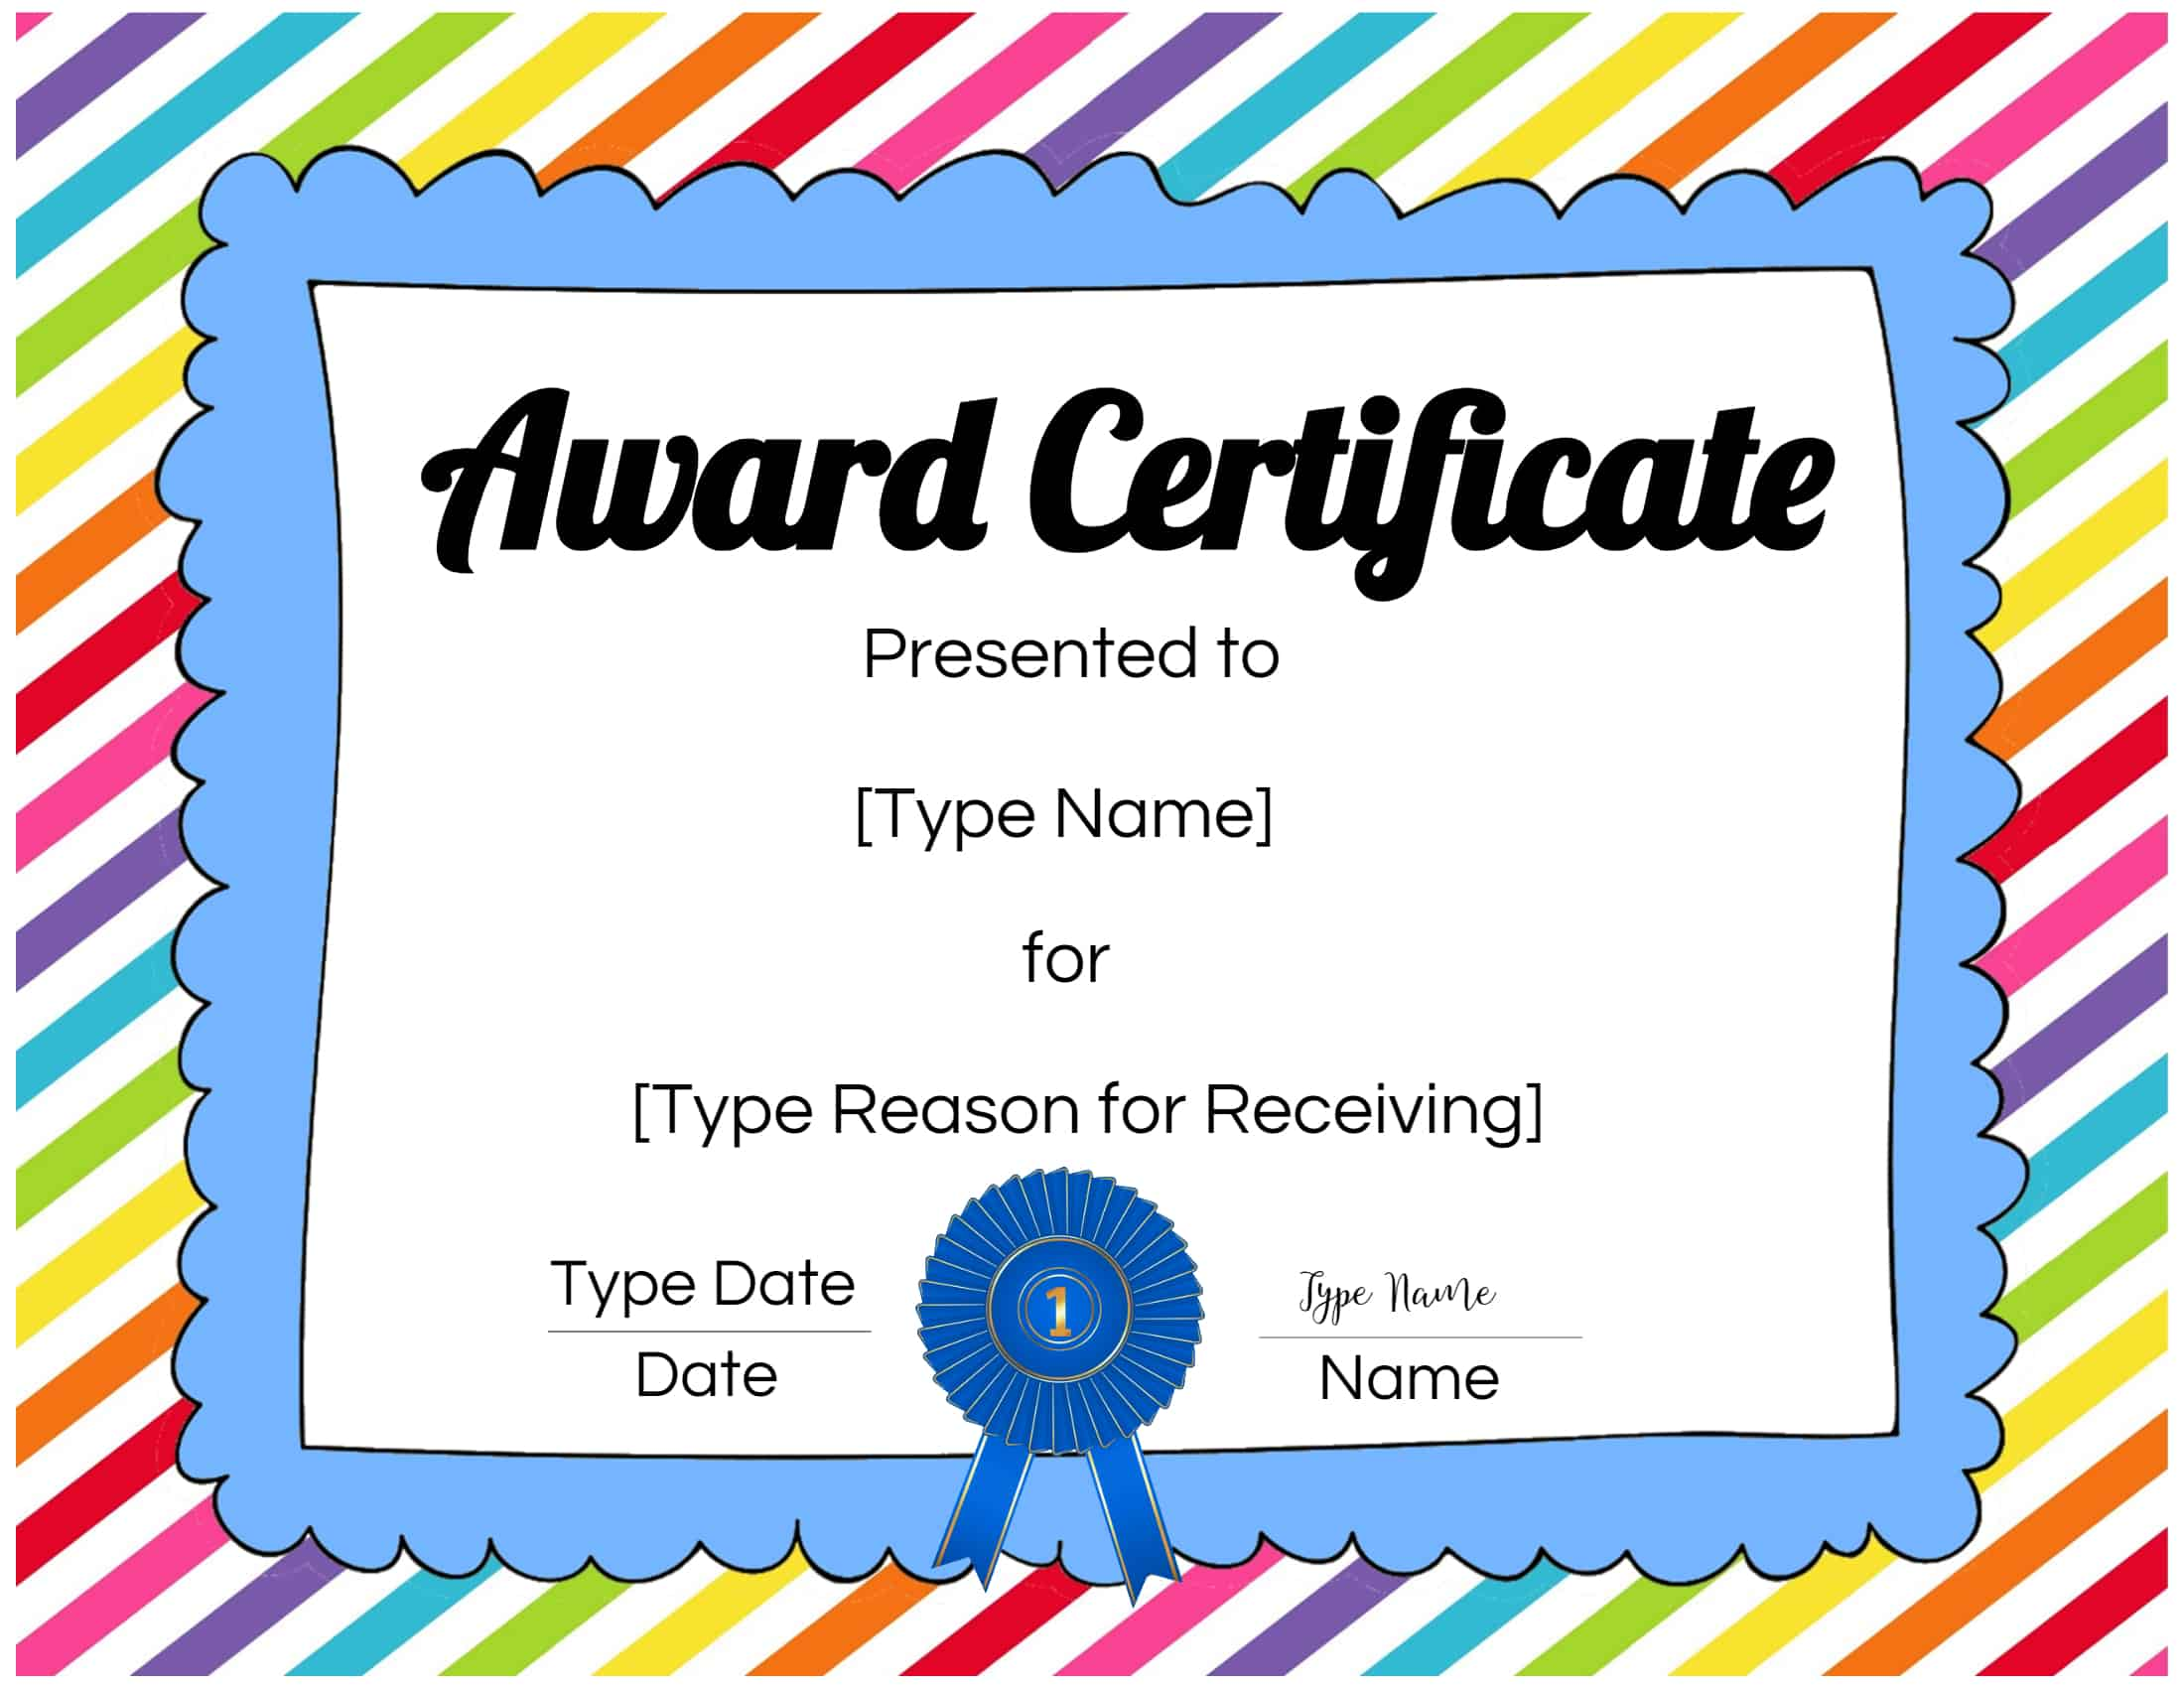 It's just an image of Ridiculous Free Printable Certificate